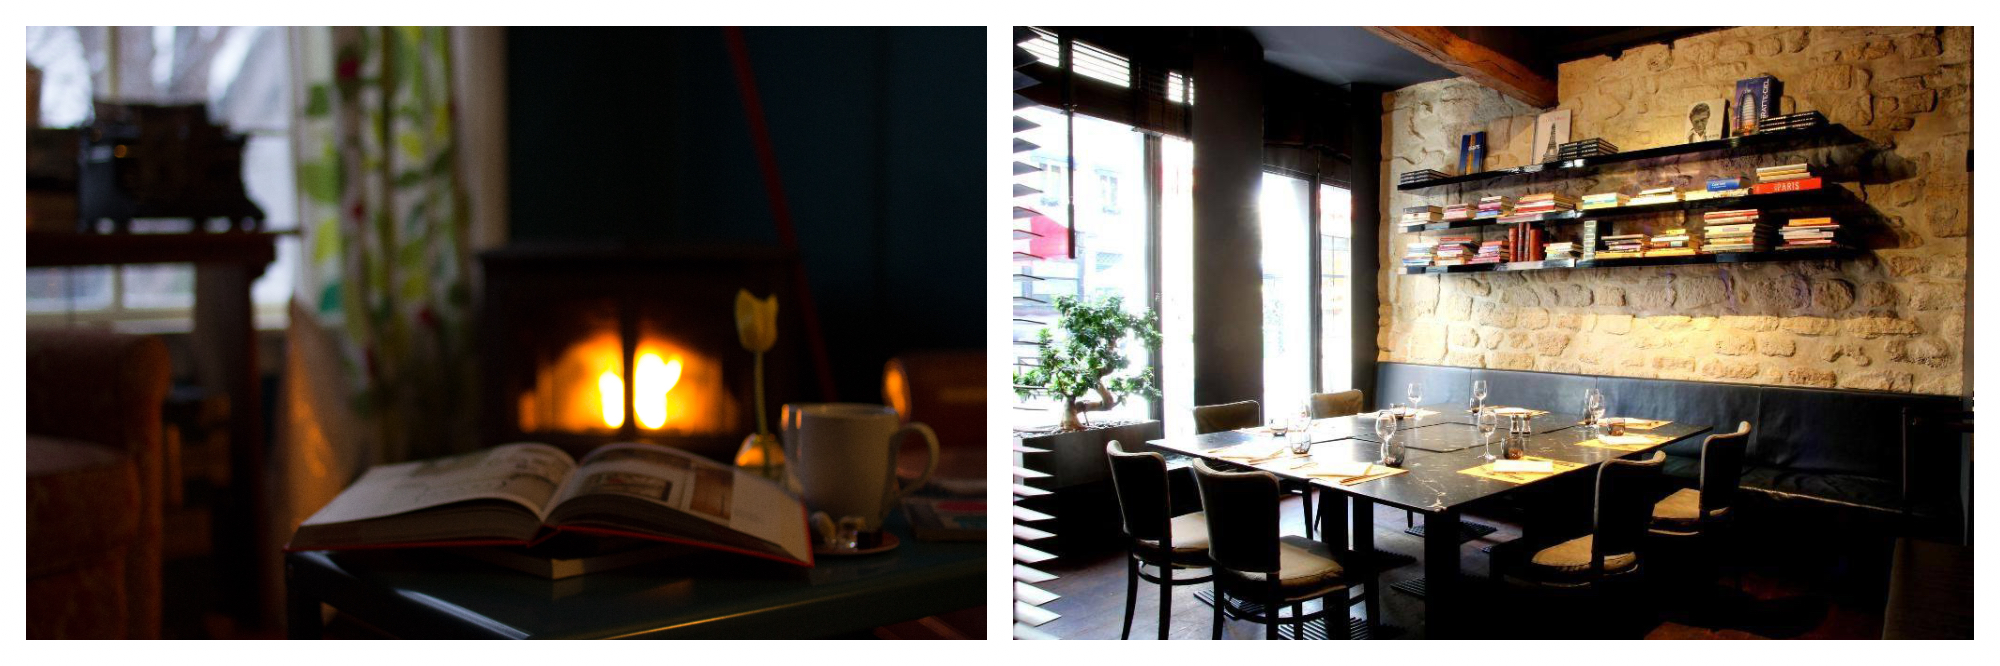 On left: A comfortable fire casts an orange glow over a café table, leaving the patron to enjoy her book and large mug of coffee on a grey winter day. On right: Light pours into the library room and onto a dining table of Atelier Maître Albert, a modern rotisserie on Paris' left bank.